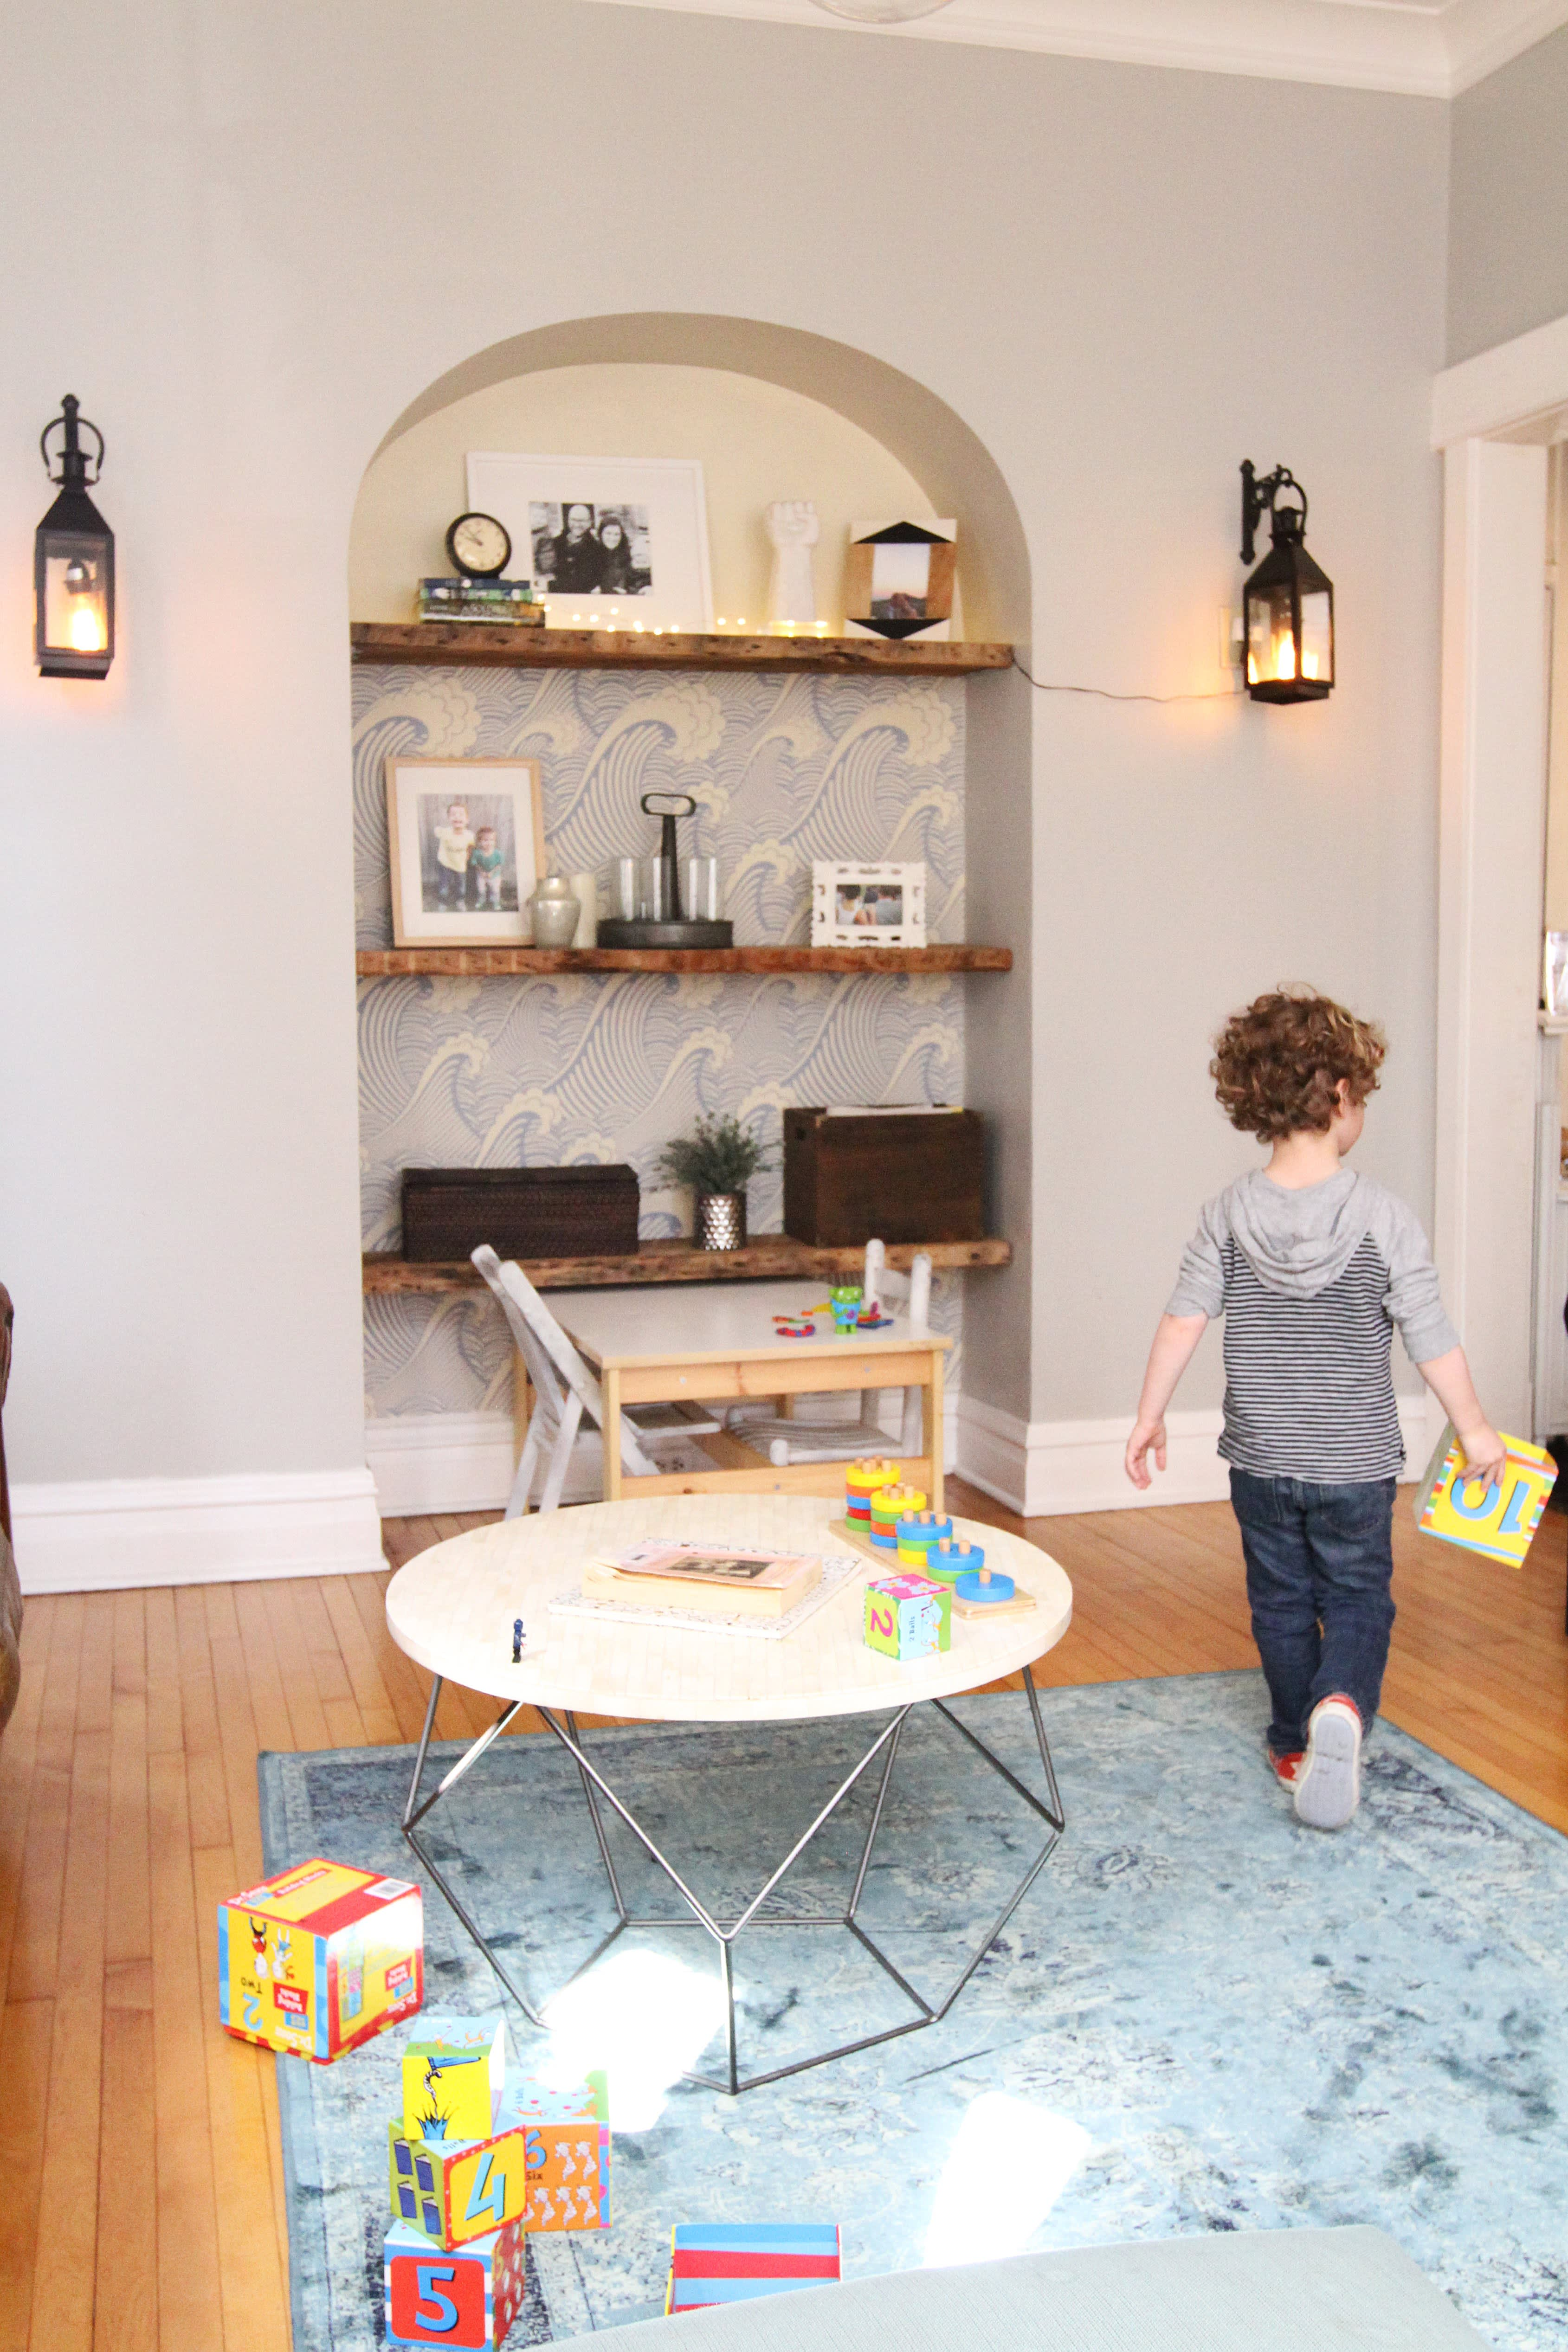 Auto Outlet Of Sarasota >> House Tour: A Modern Chicago House Full of DIY Projects ...